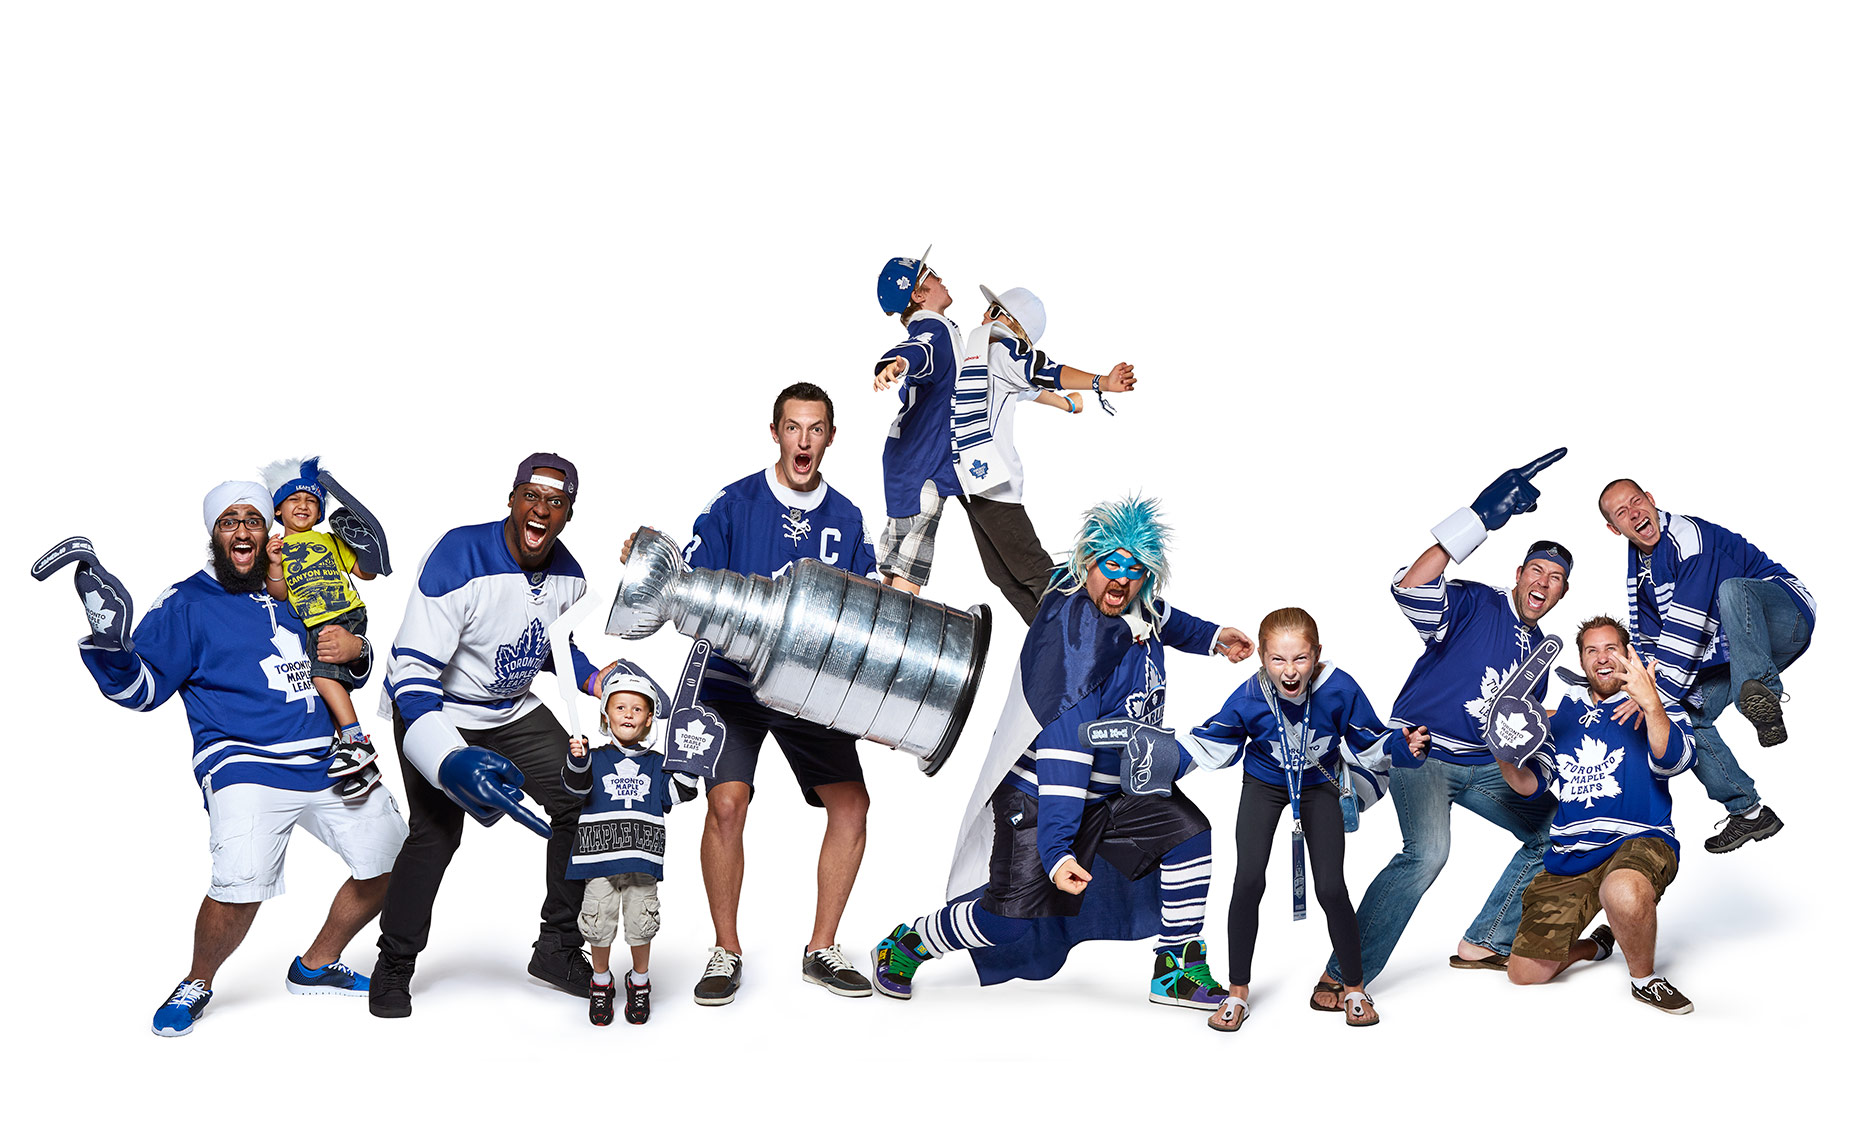 Die Hard Toronto Maple Leafs Fans for ESPN The Magazine